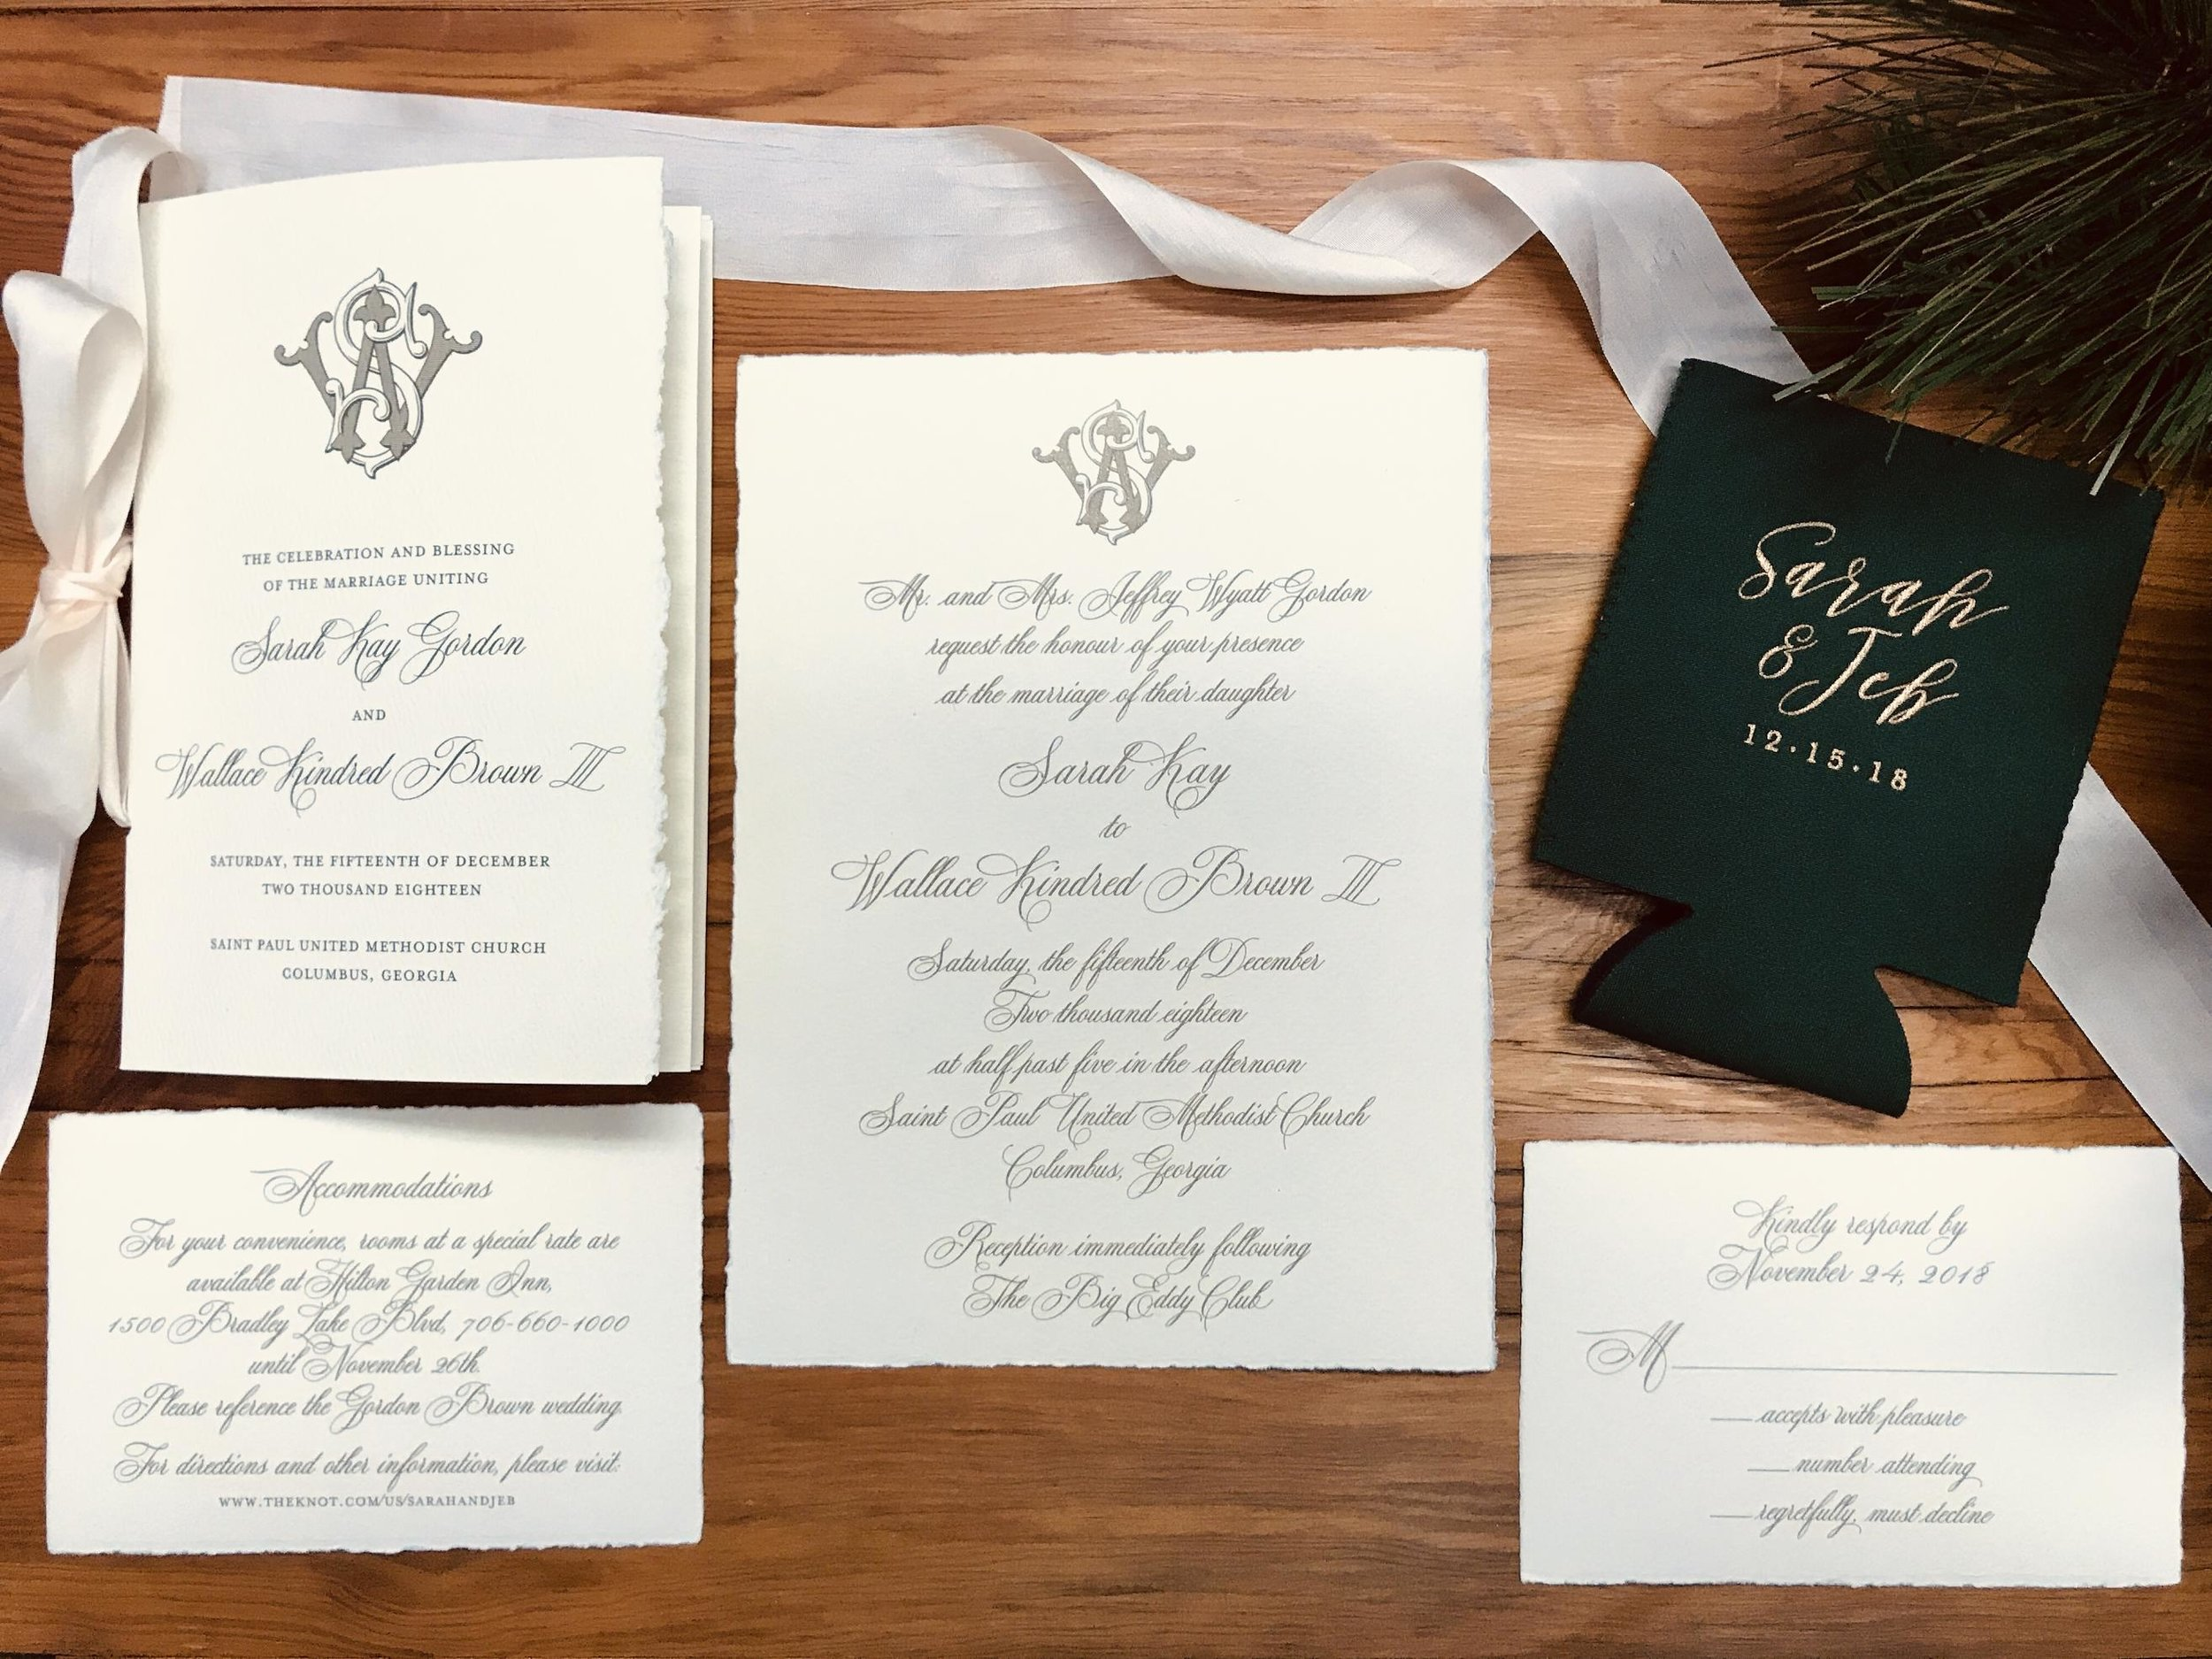 Weddings - INVITATIONS, SAVE THE DATES, AND EXTRAS